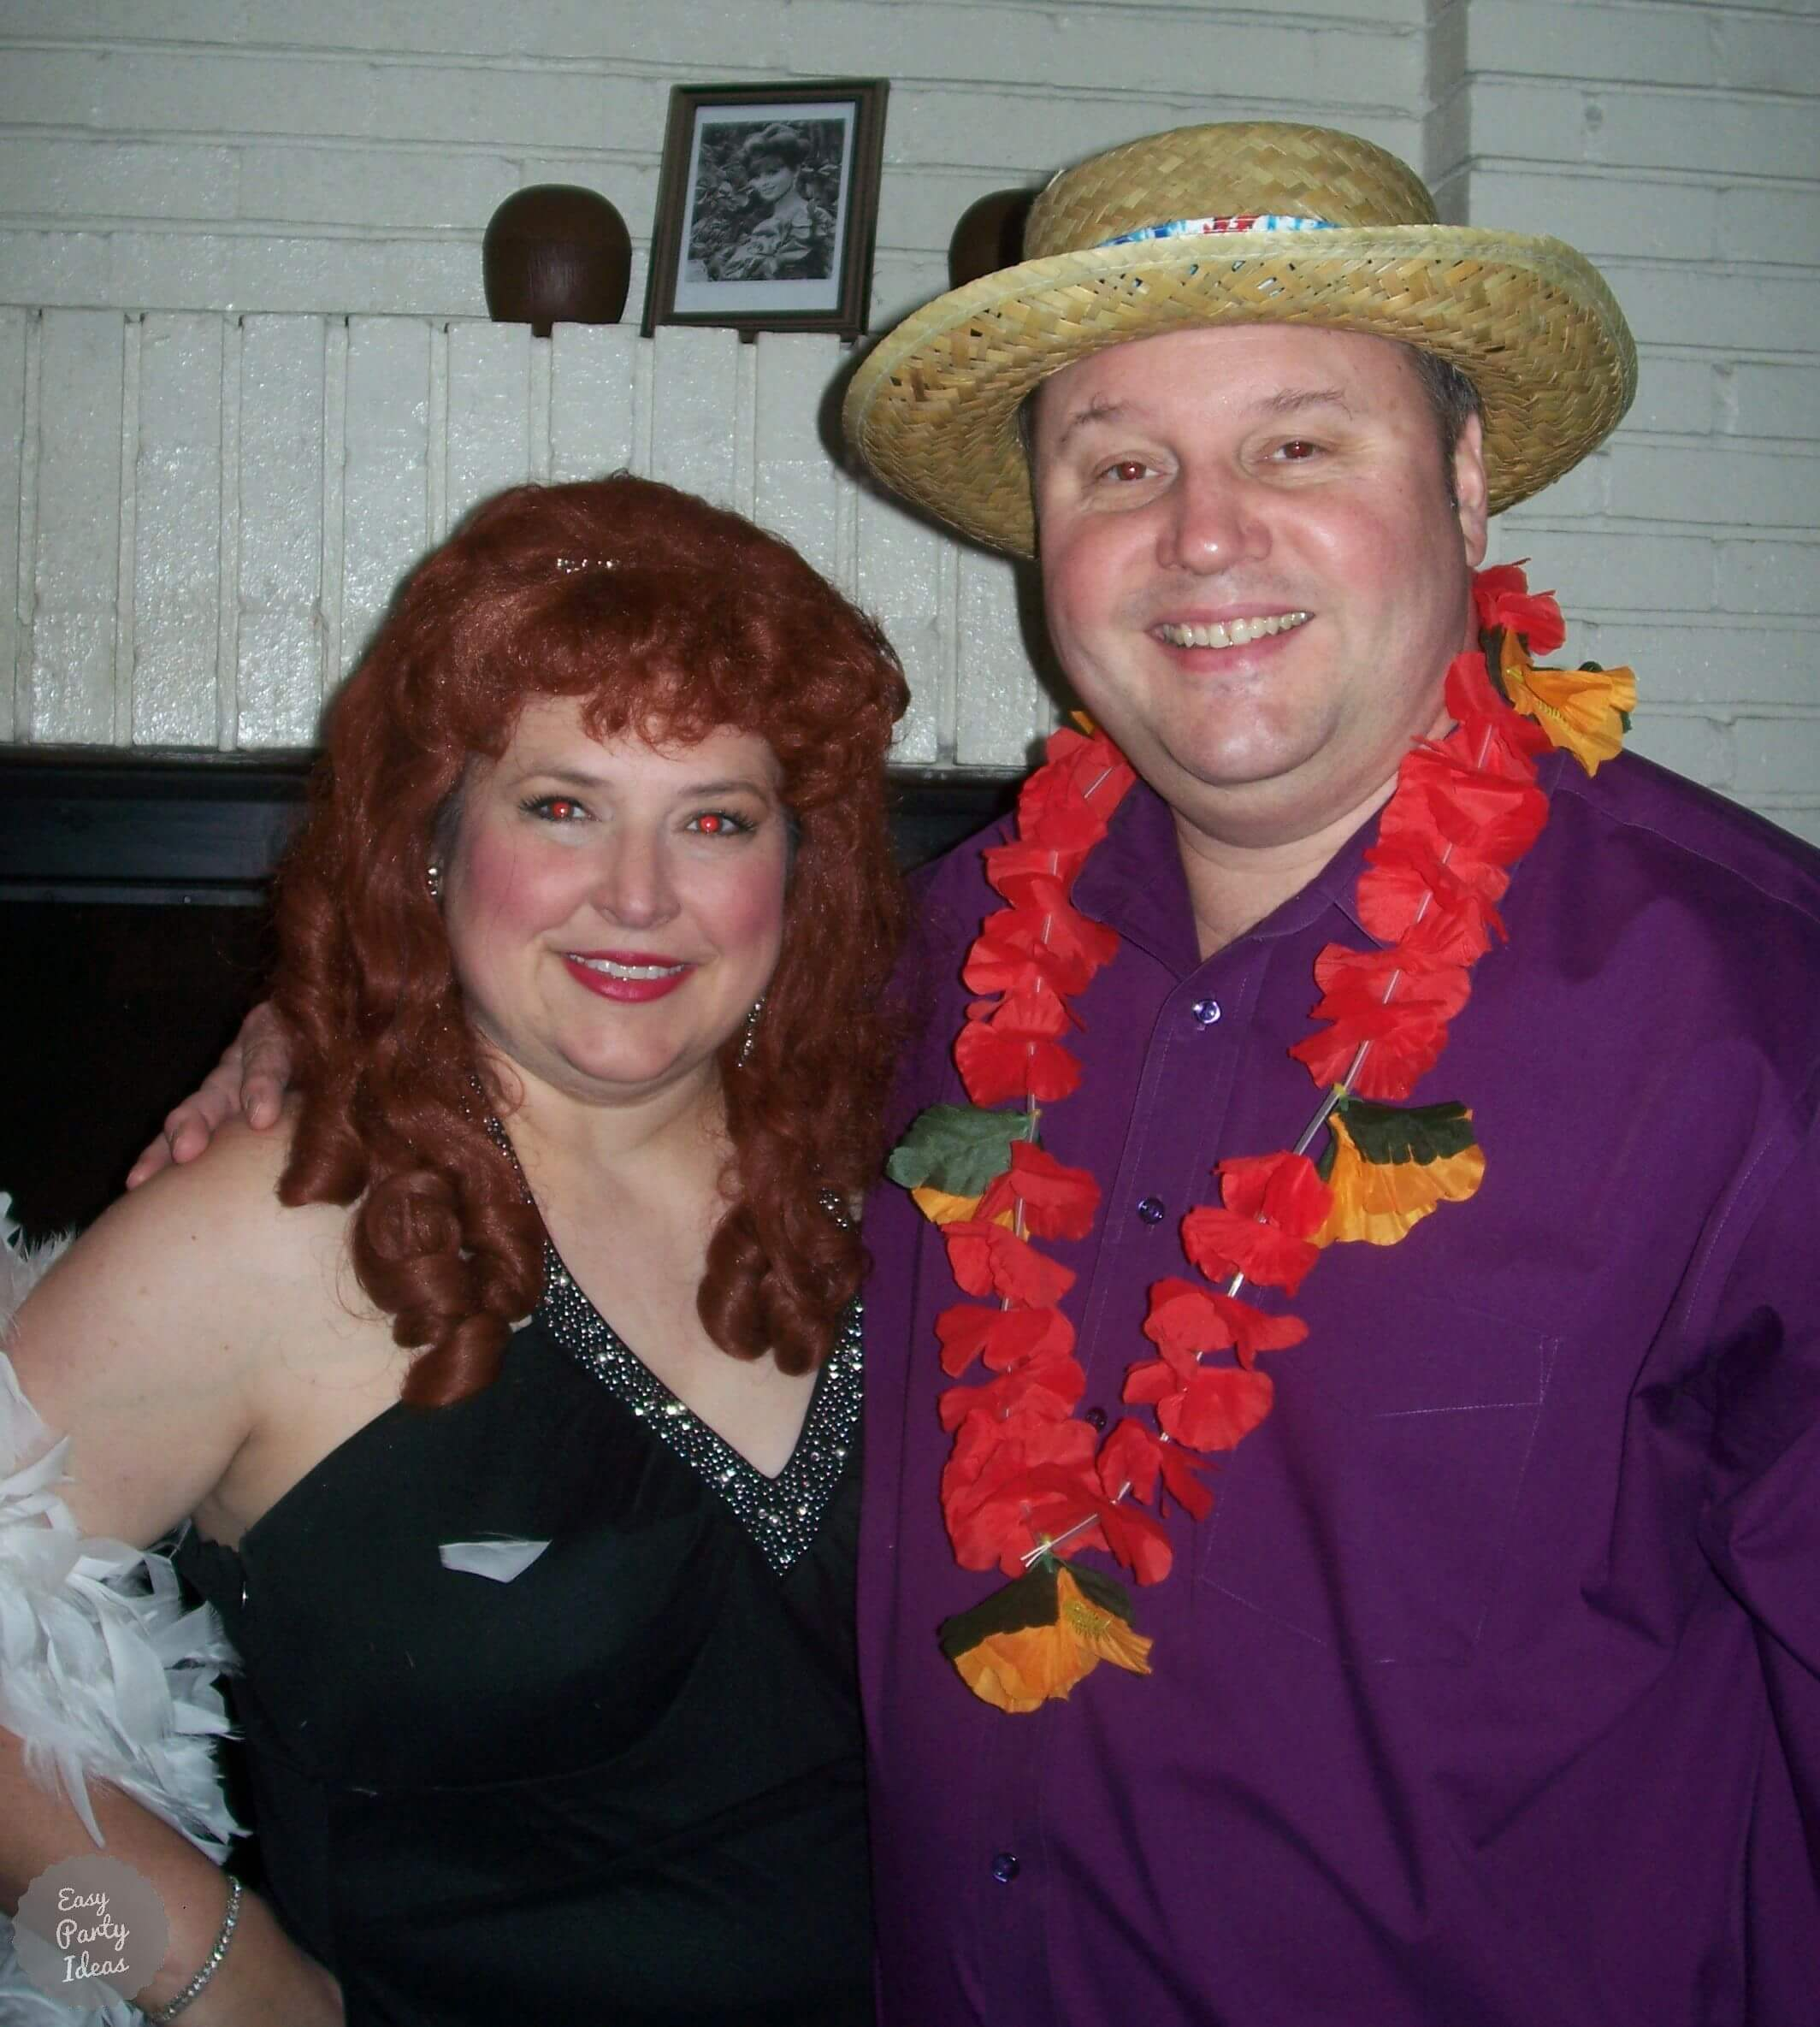 Gilligan's Island Party Costumes